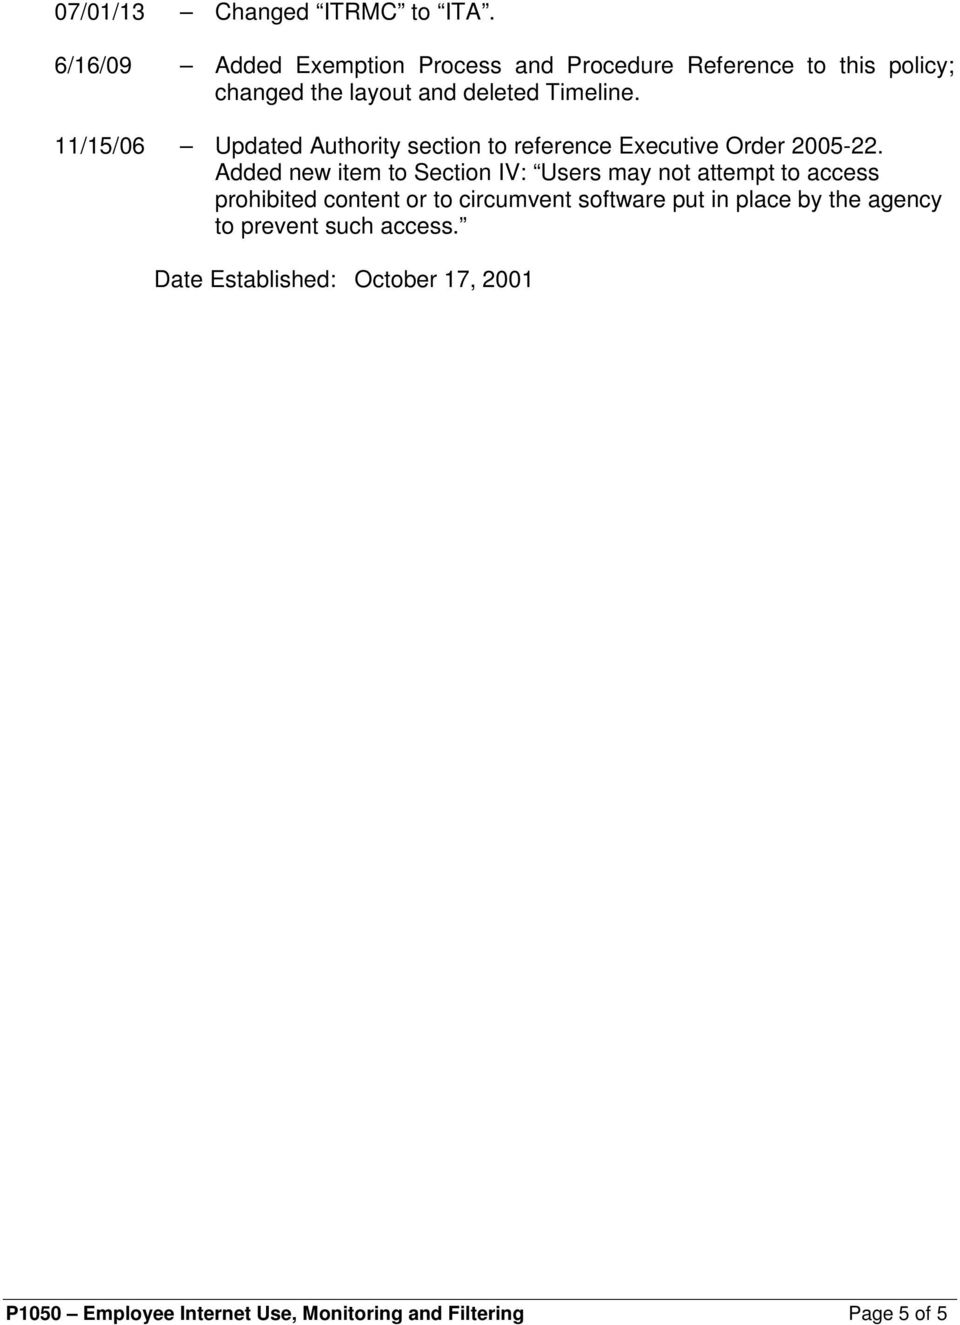 11/15/06 Updated Authority section to reference Executive Order 2005-22.